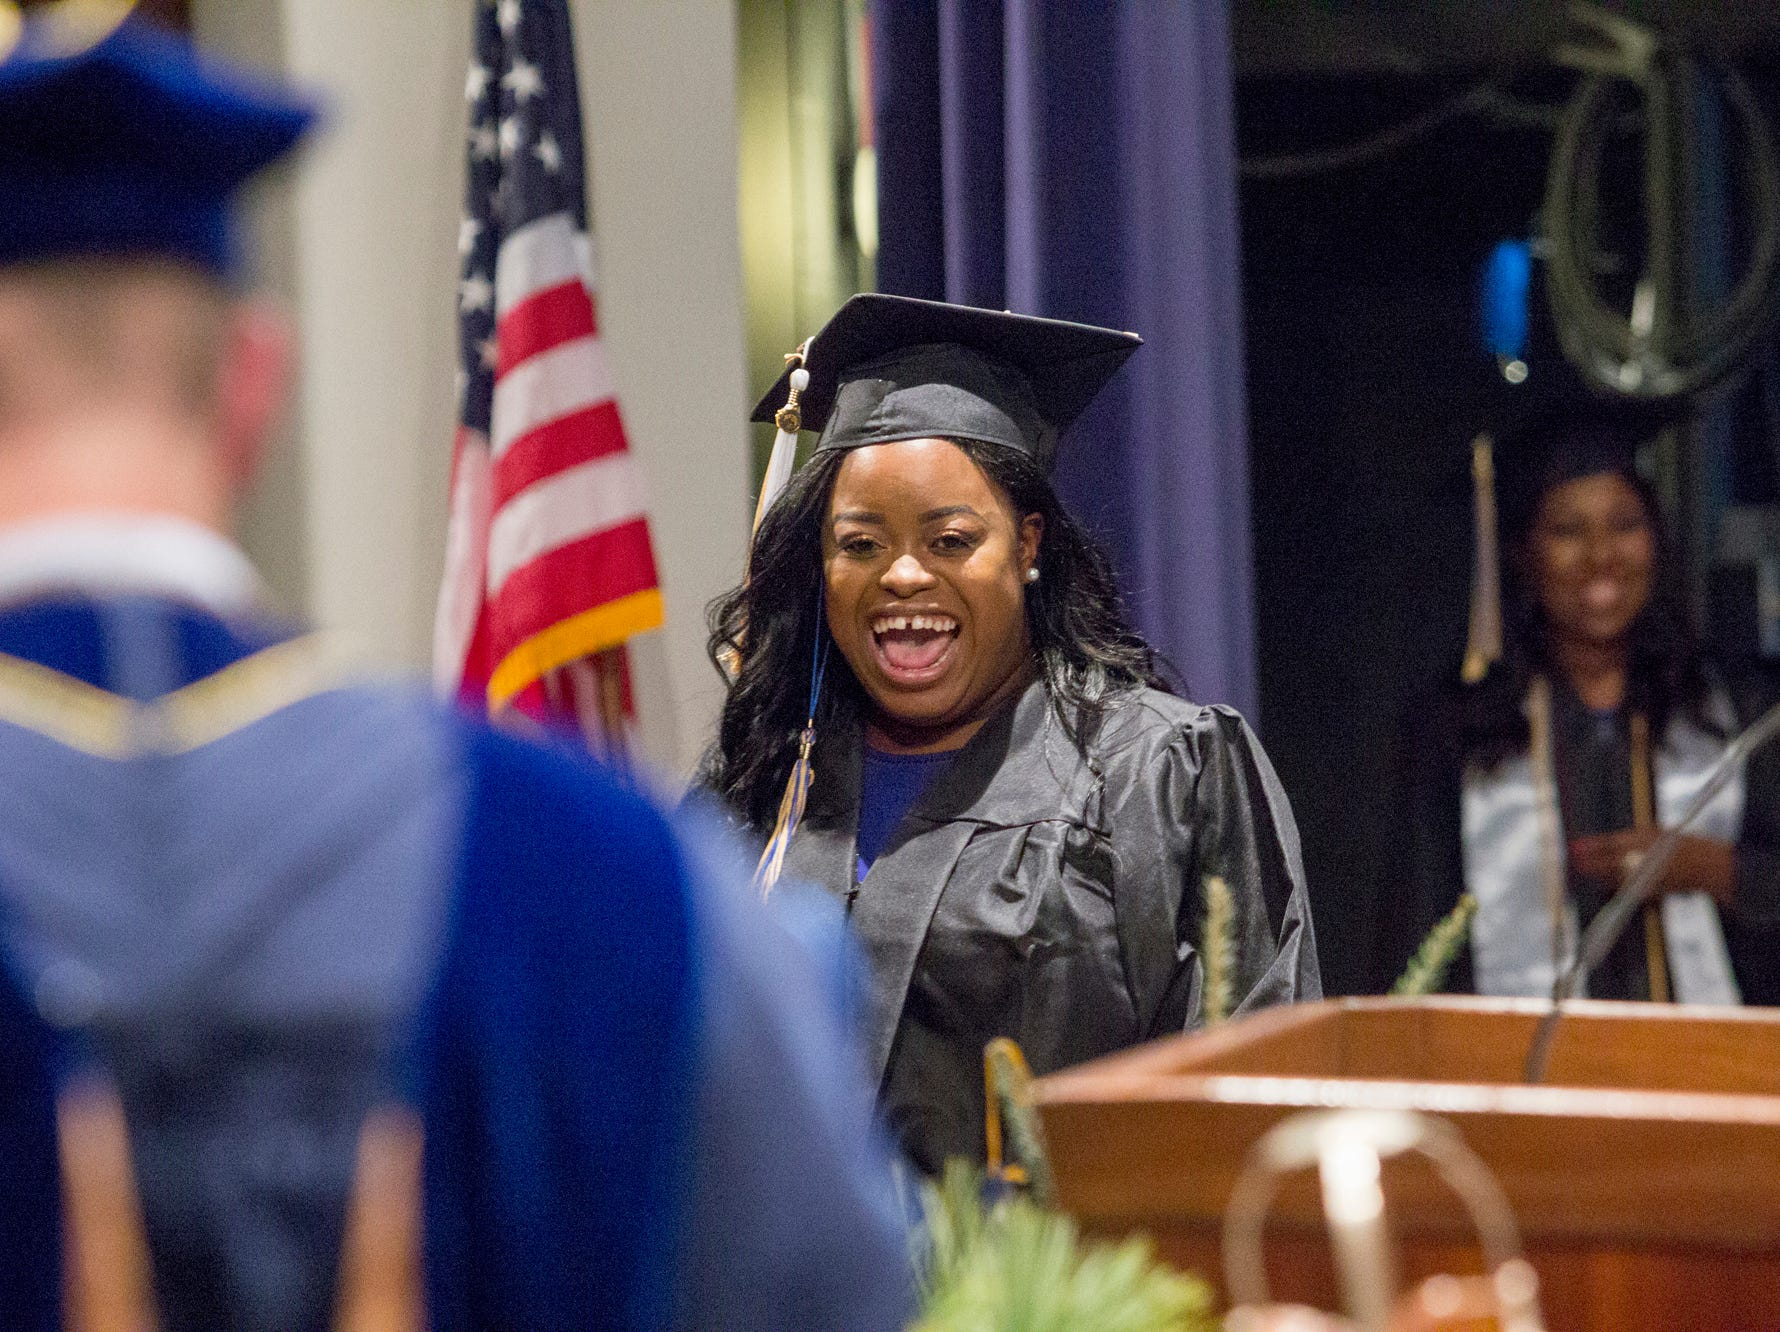 Jakayla Morrison receives her diploma from President Tony Floyd. Mars Hill University conferred bachelor's degrees on 71 graduates on Dec. 14, 2018.